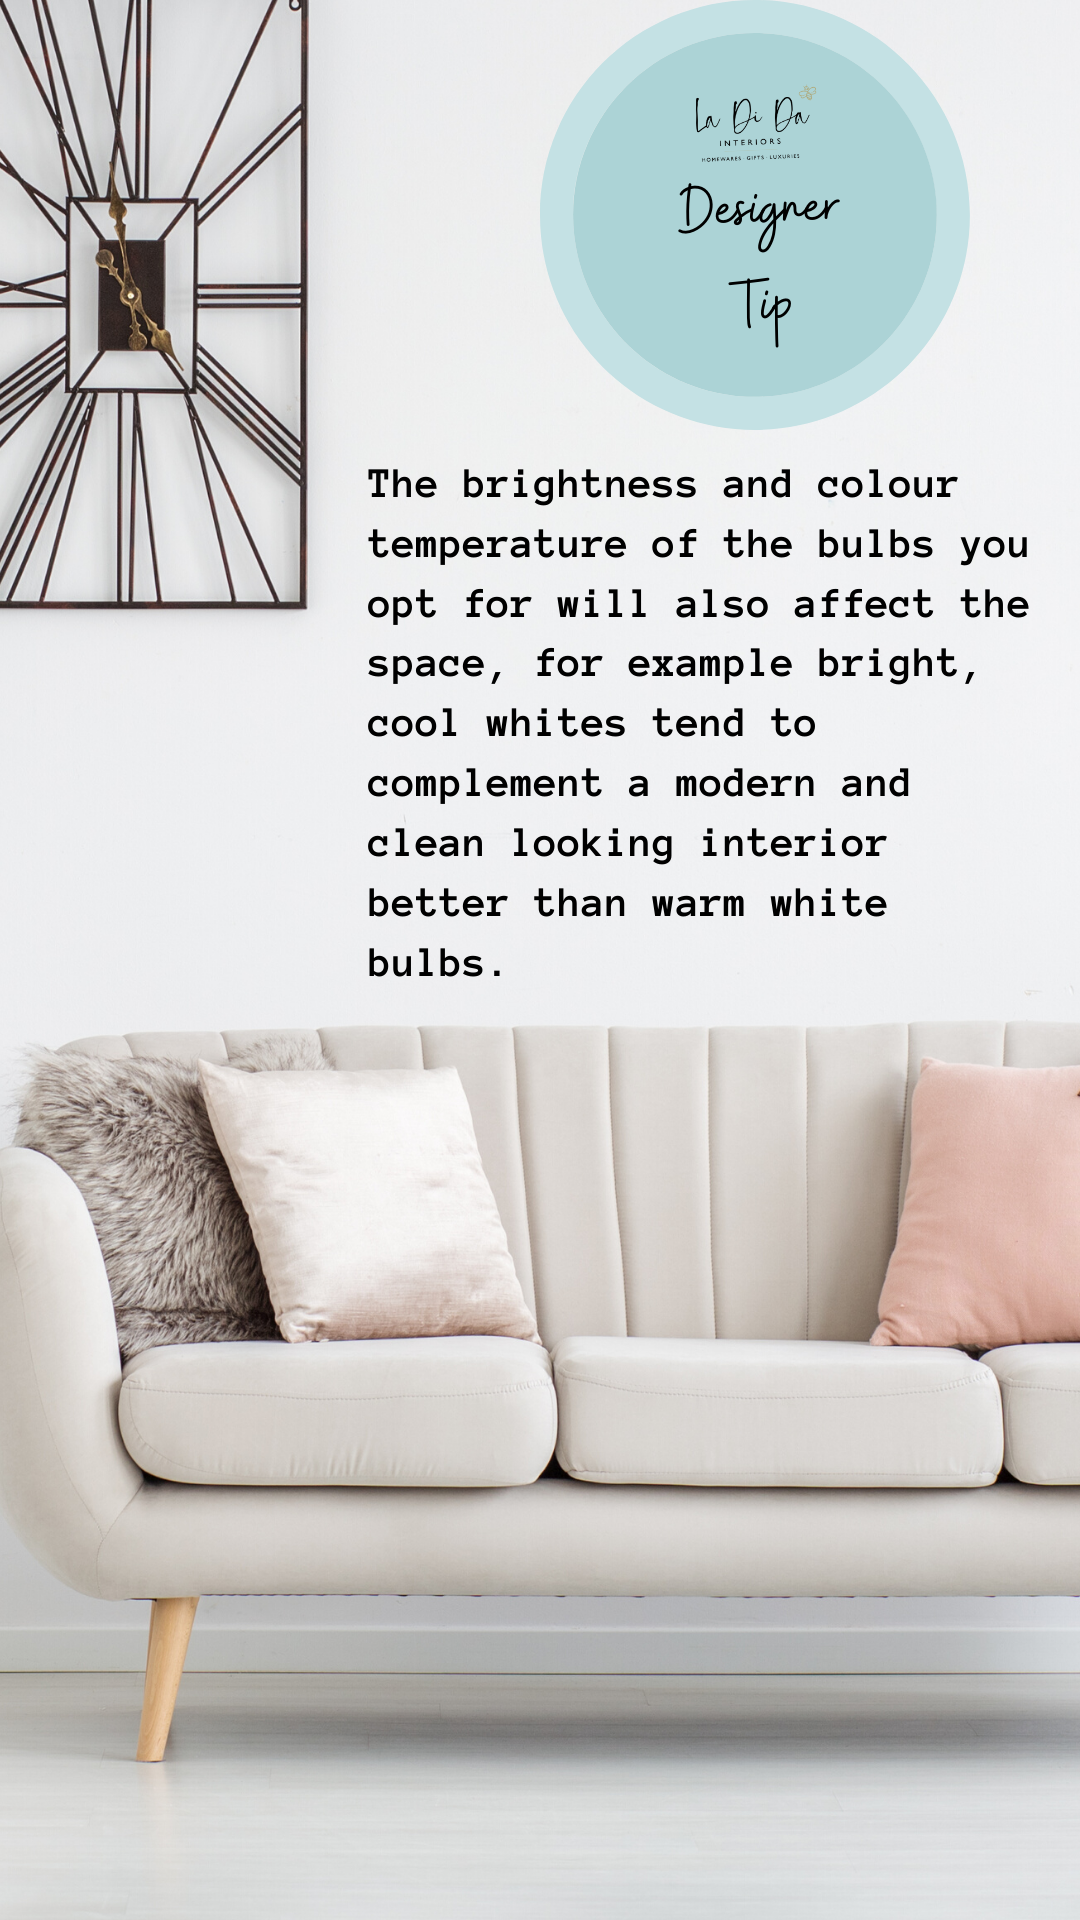 Our Interior Design Guru Steph Briggs shares her top tips in her latest blog to inspire you and transform your home! #interiordesigntips #interiordesigner